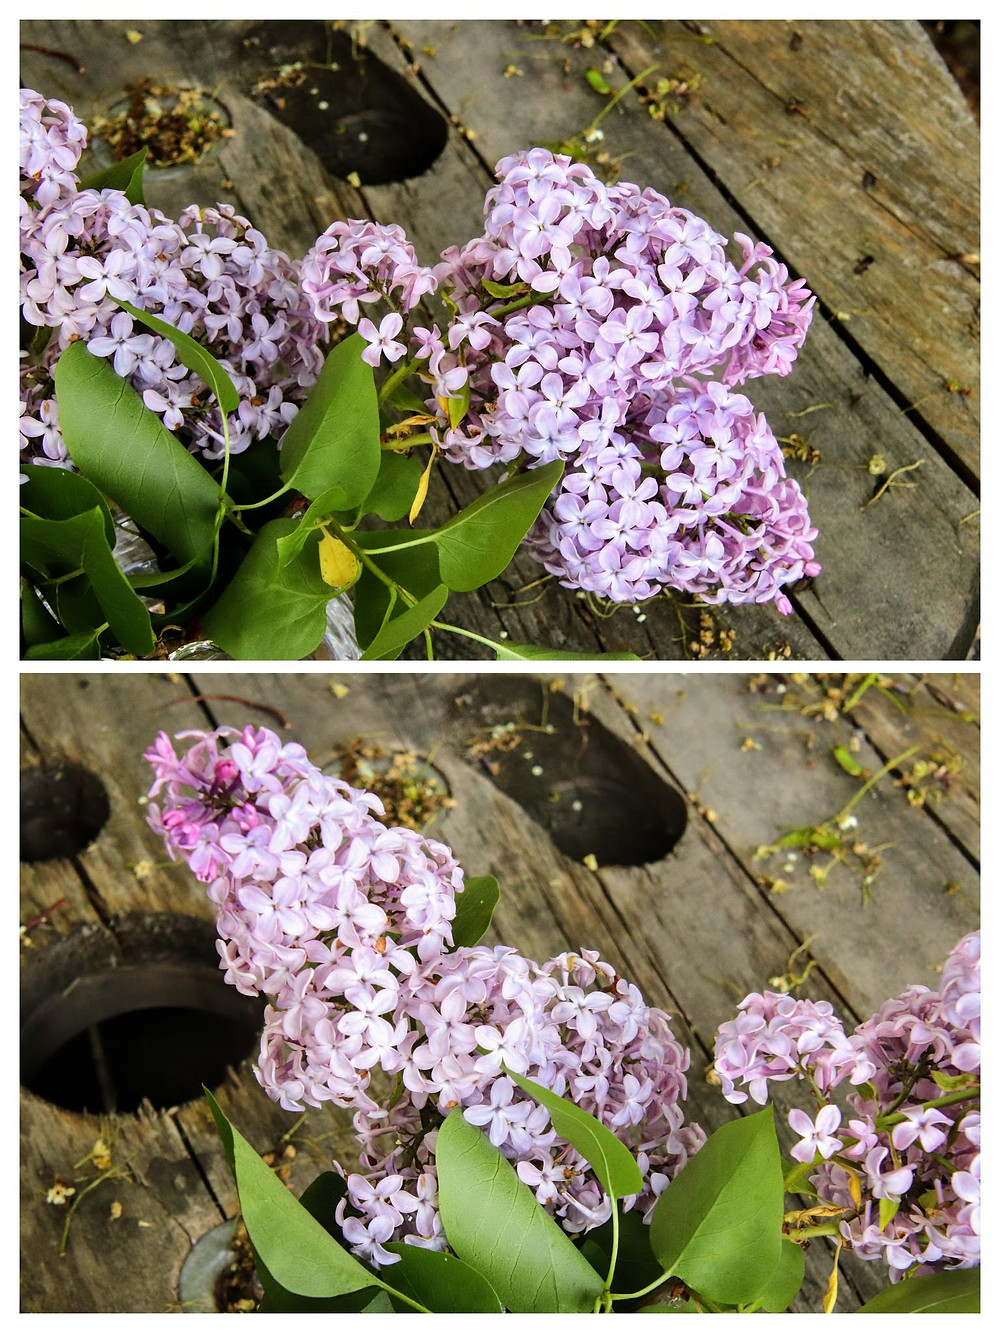 Lilacs from my friend Cindy